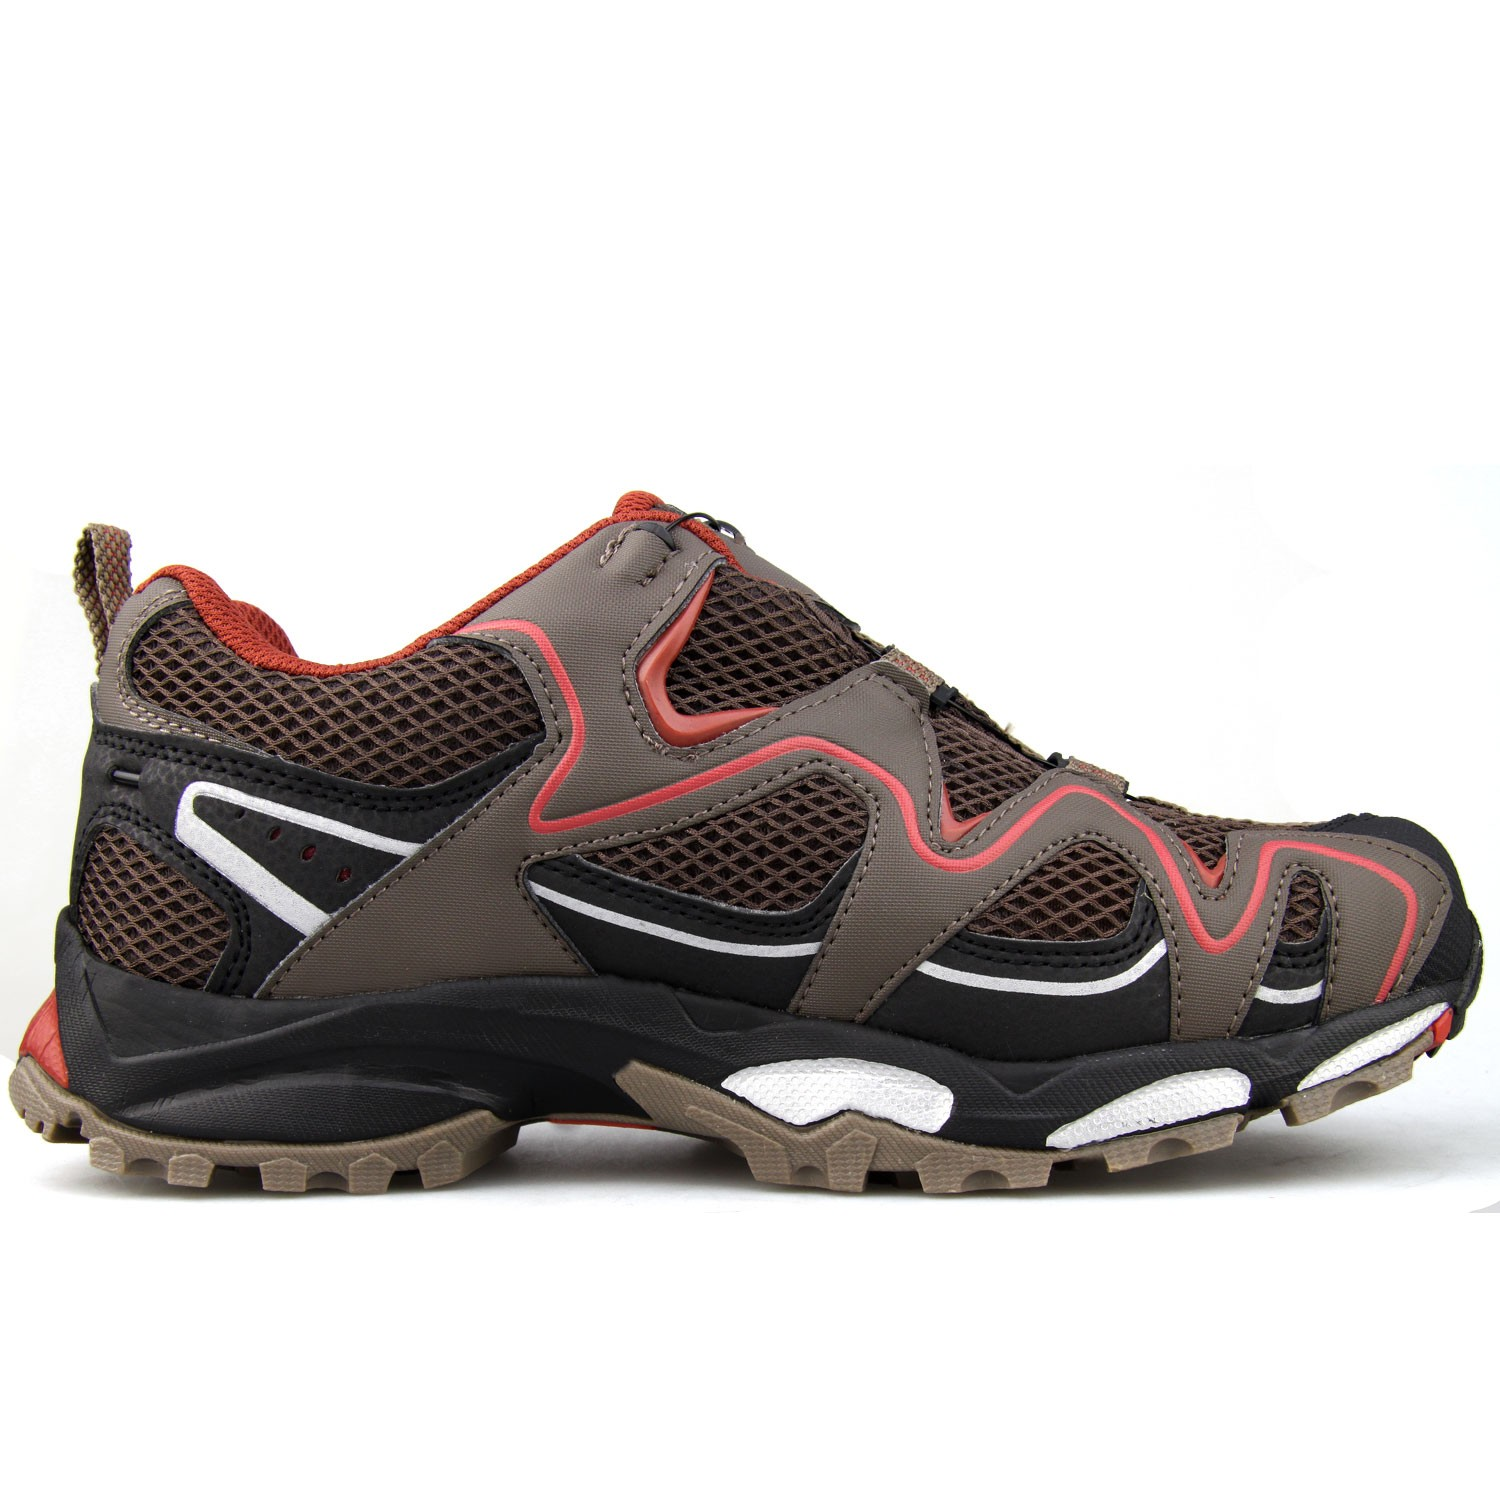 Mens Athlete Running shoes Manufacturers, Mens Athlete Running shoes Factory, Supply Mens Athlete Running shoes